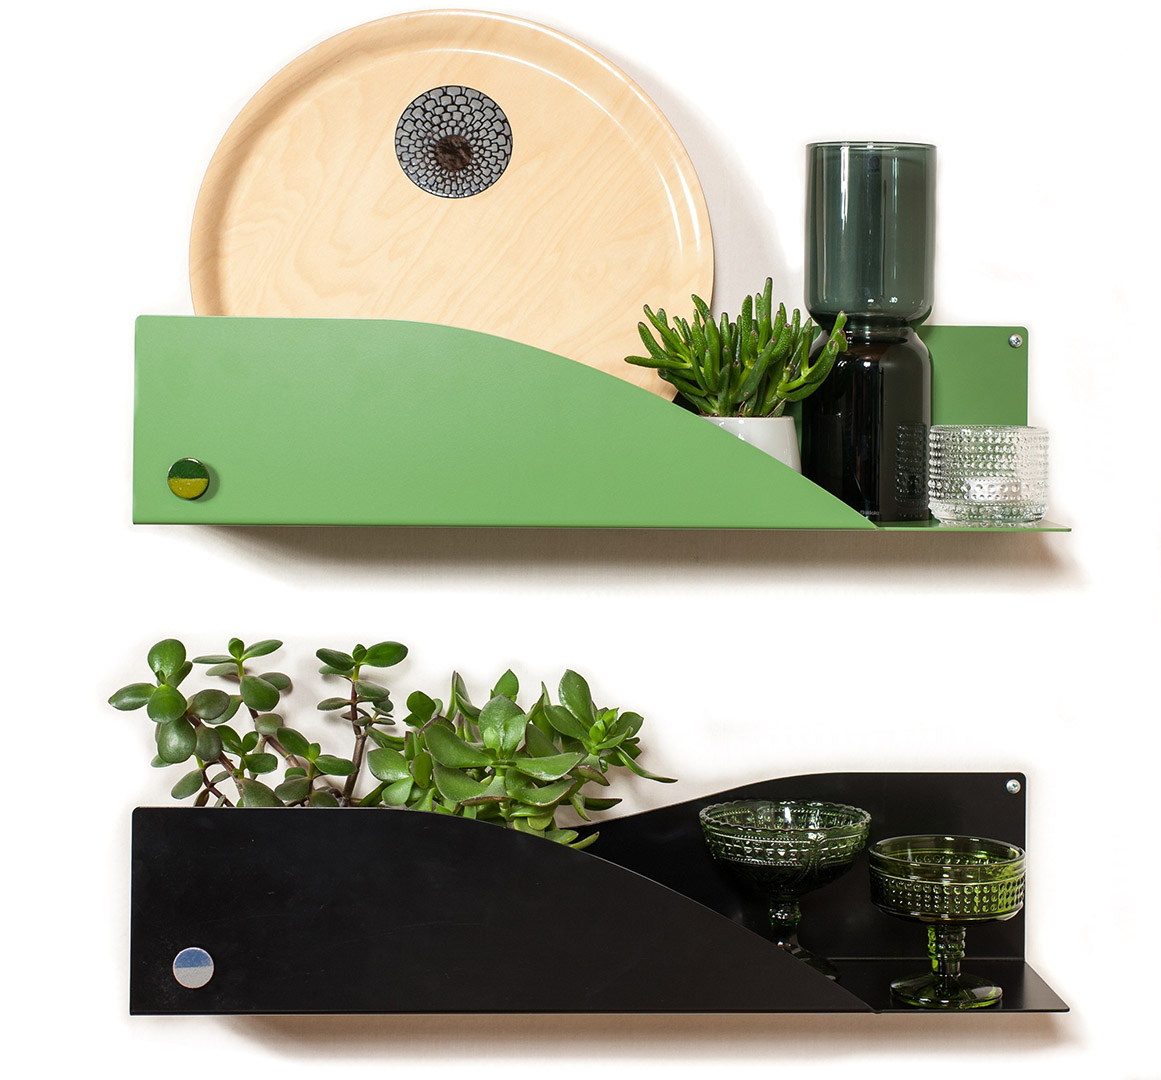 Saimaa shelves in green and black. Pauliina Rundgrén HandiCrafts, Designing products with a purpose, Scan Magazine